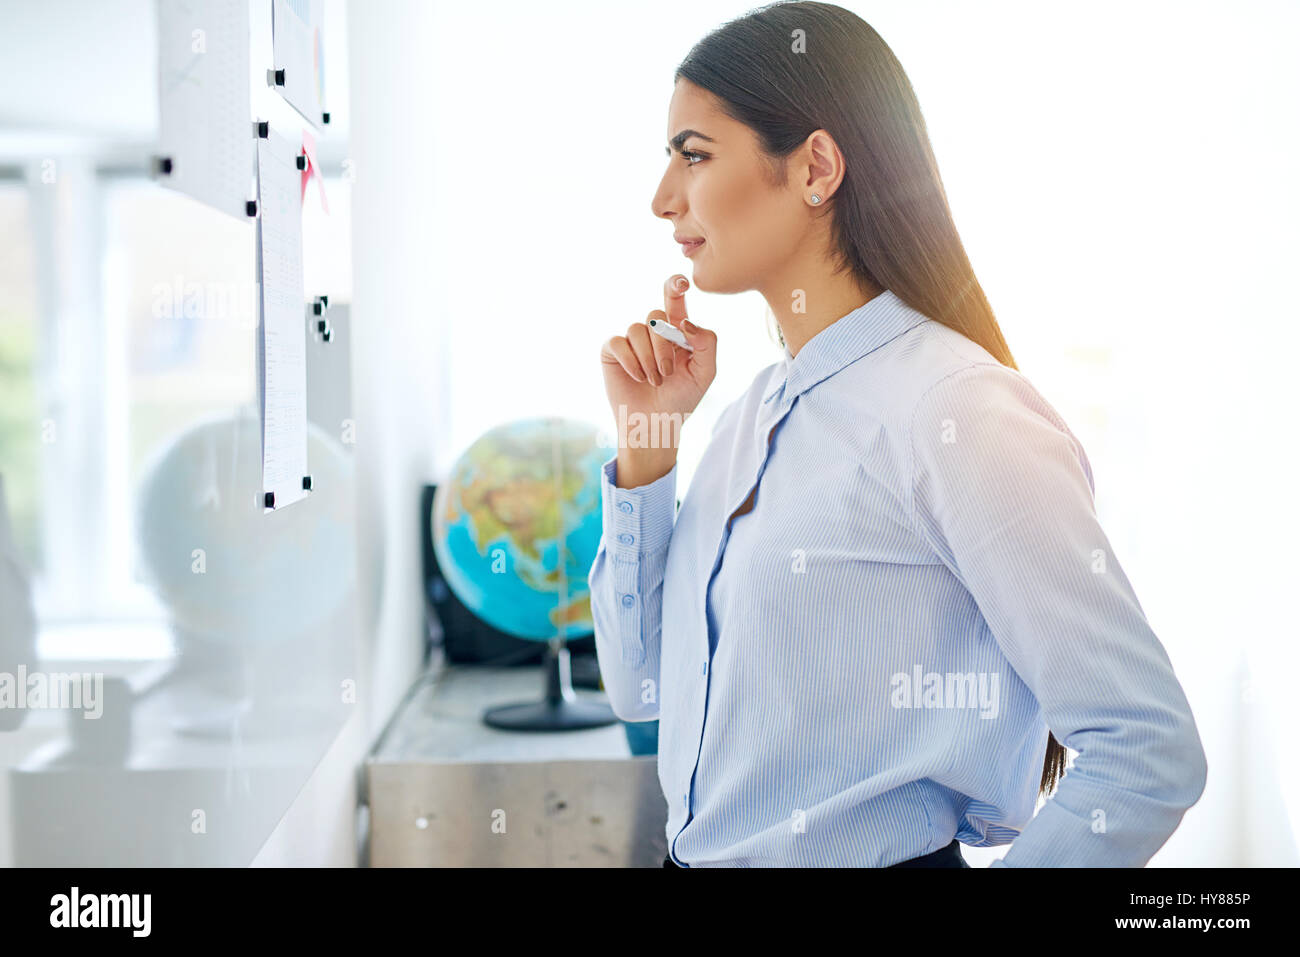 Thoughtful businesswoman reading a notice on a reflective board with her finger to her chin and a pensive expression, - Stock Image